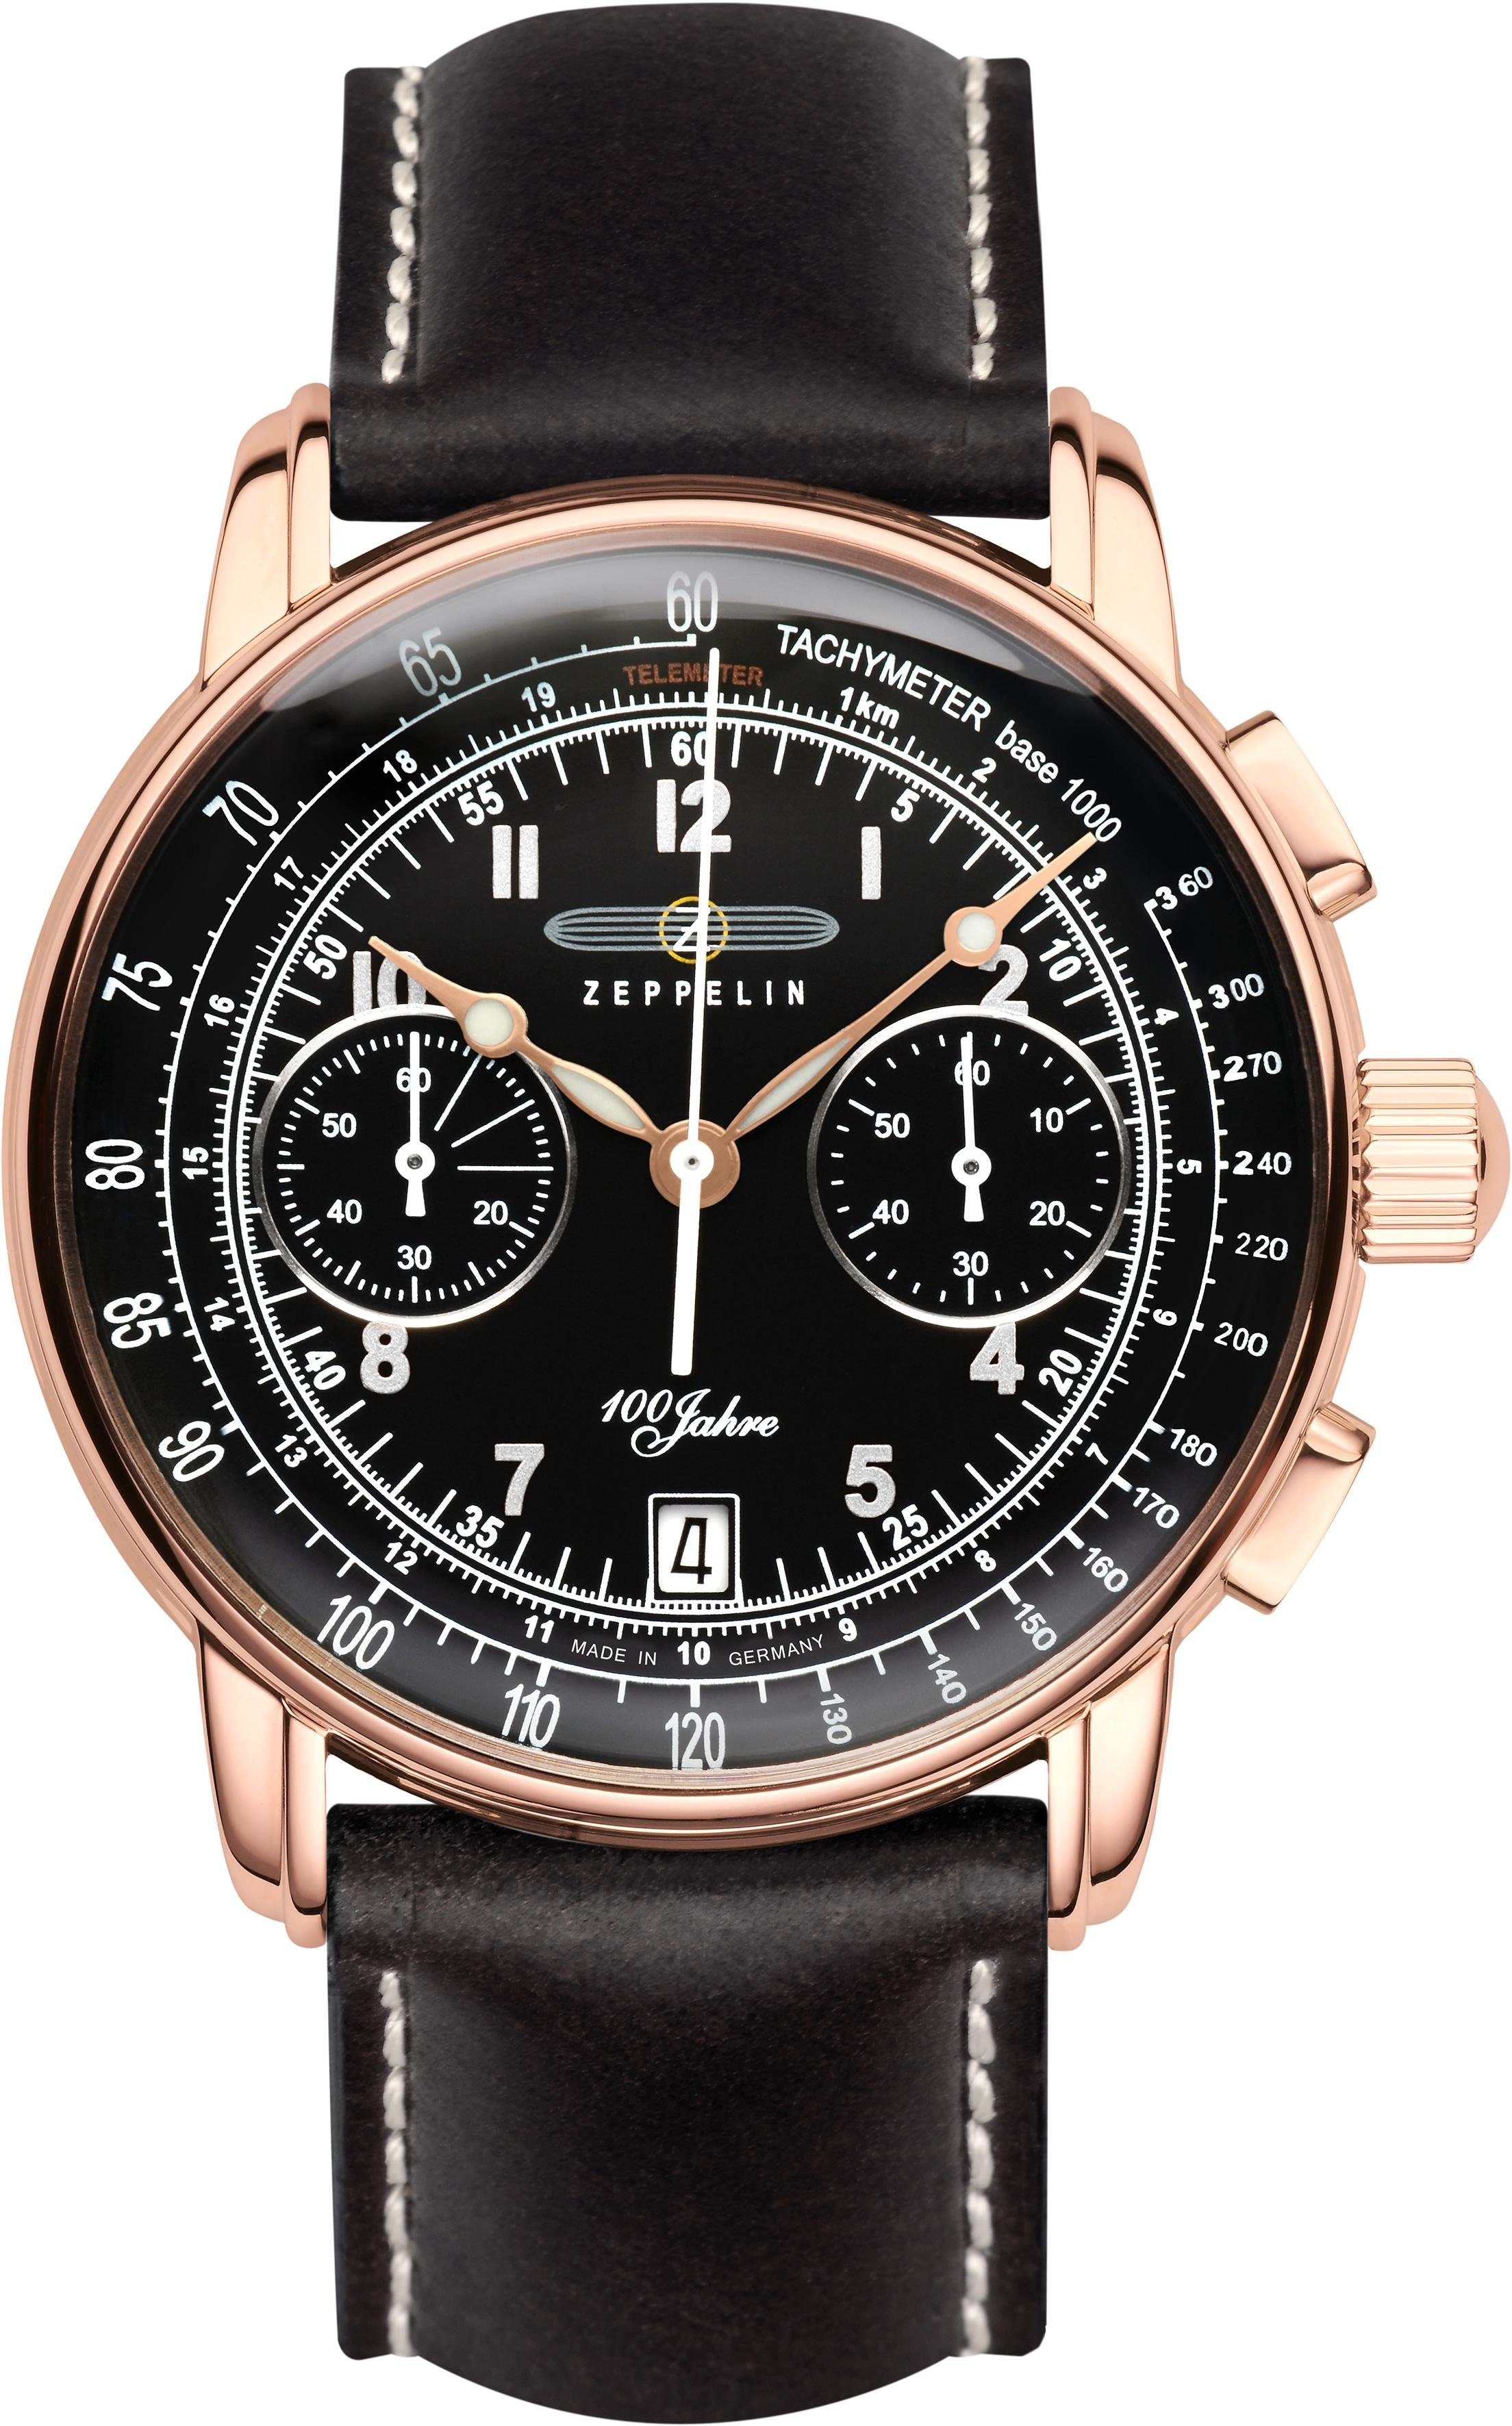 ZEPPELIN Chronograph »100 Jahre Zeppelin, 7676-2« Made in Germany